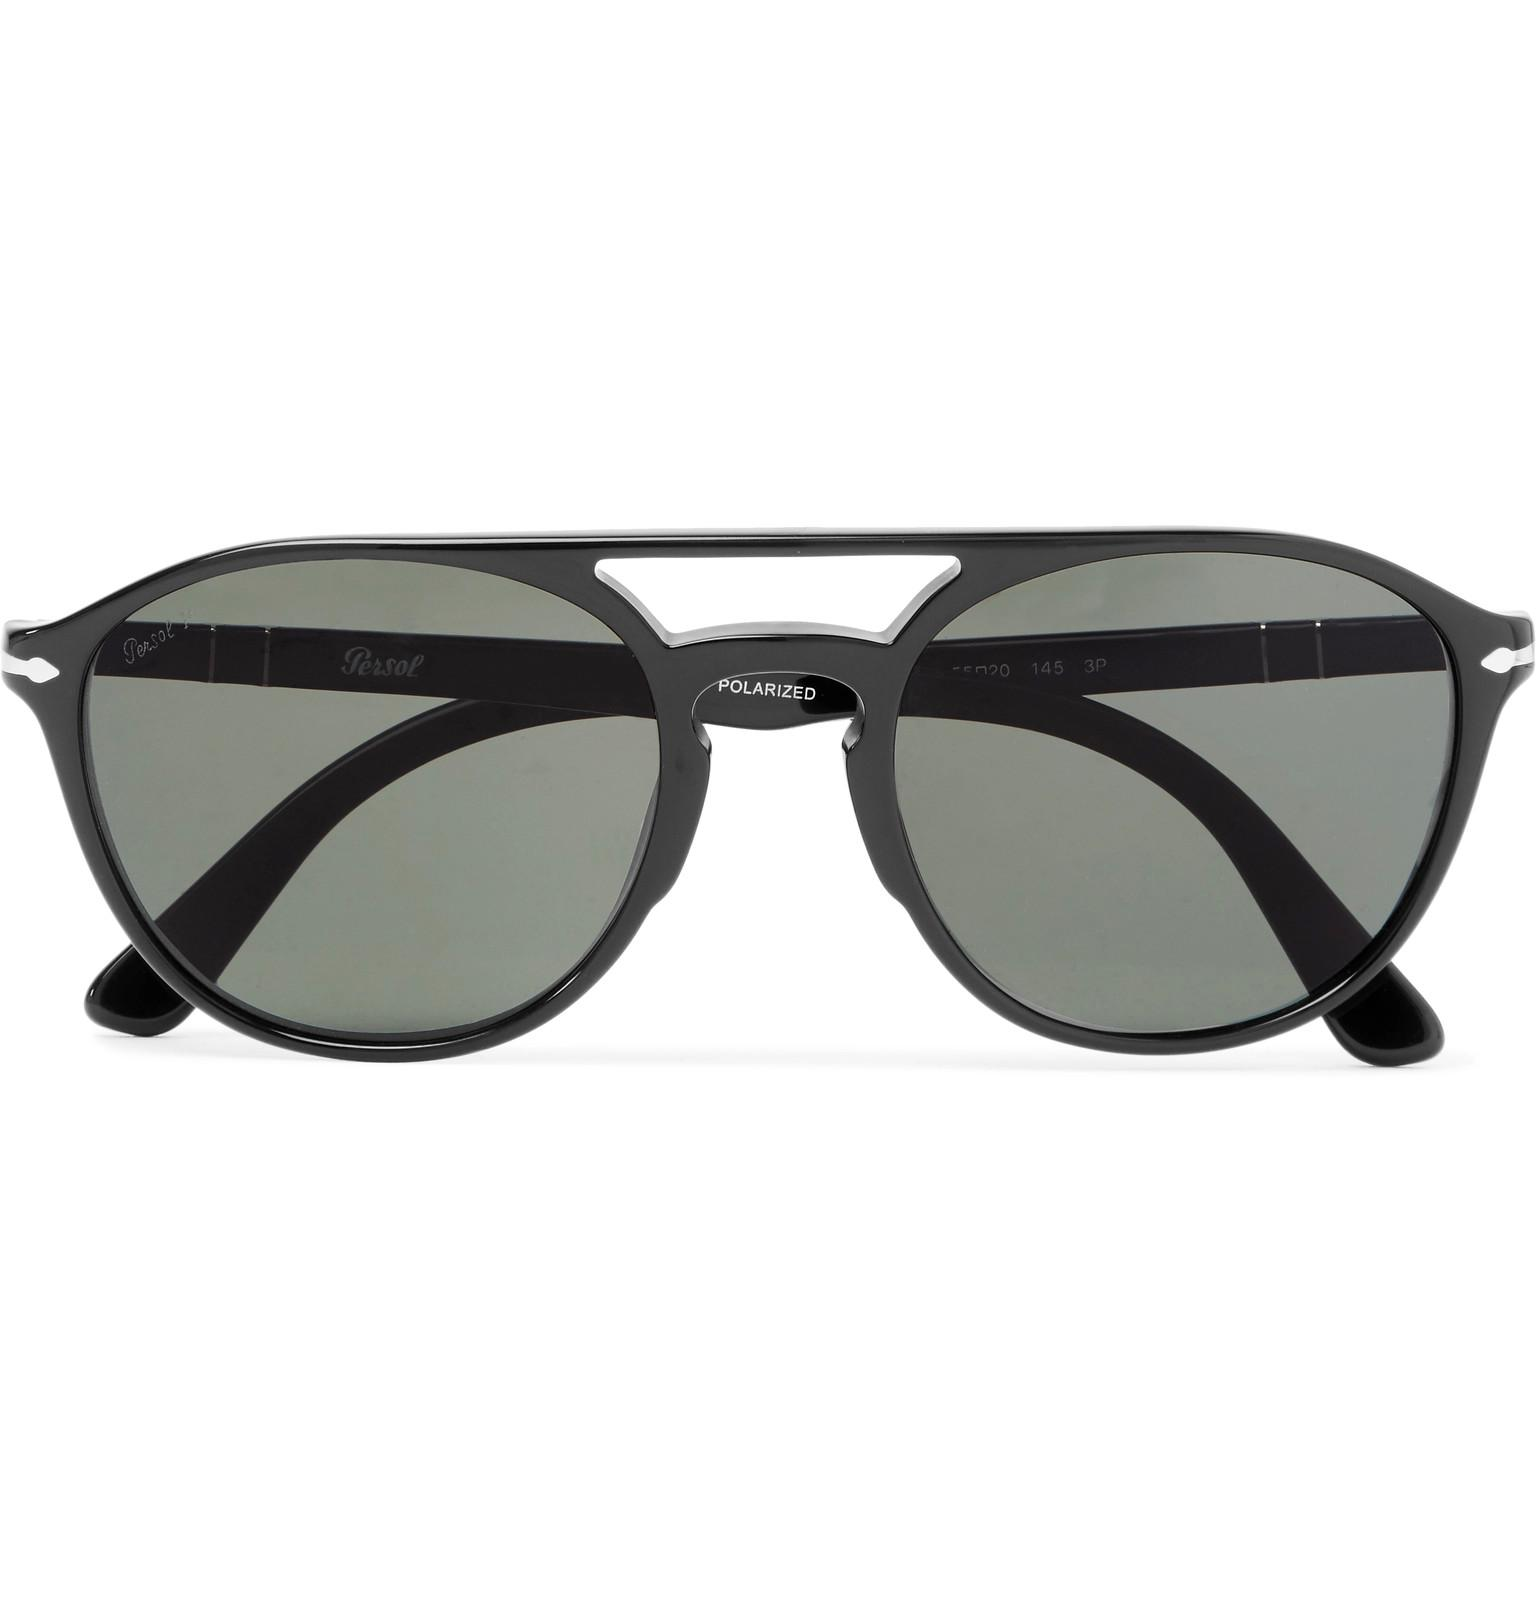 10b279338ca59 Lyst - Persol Aviator-style Acetate Sunglasses in Black for Men